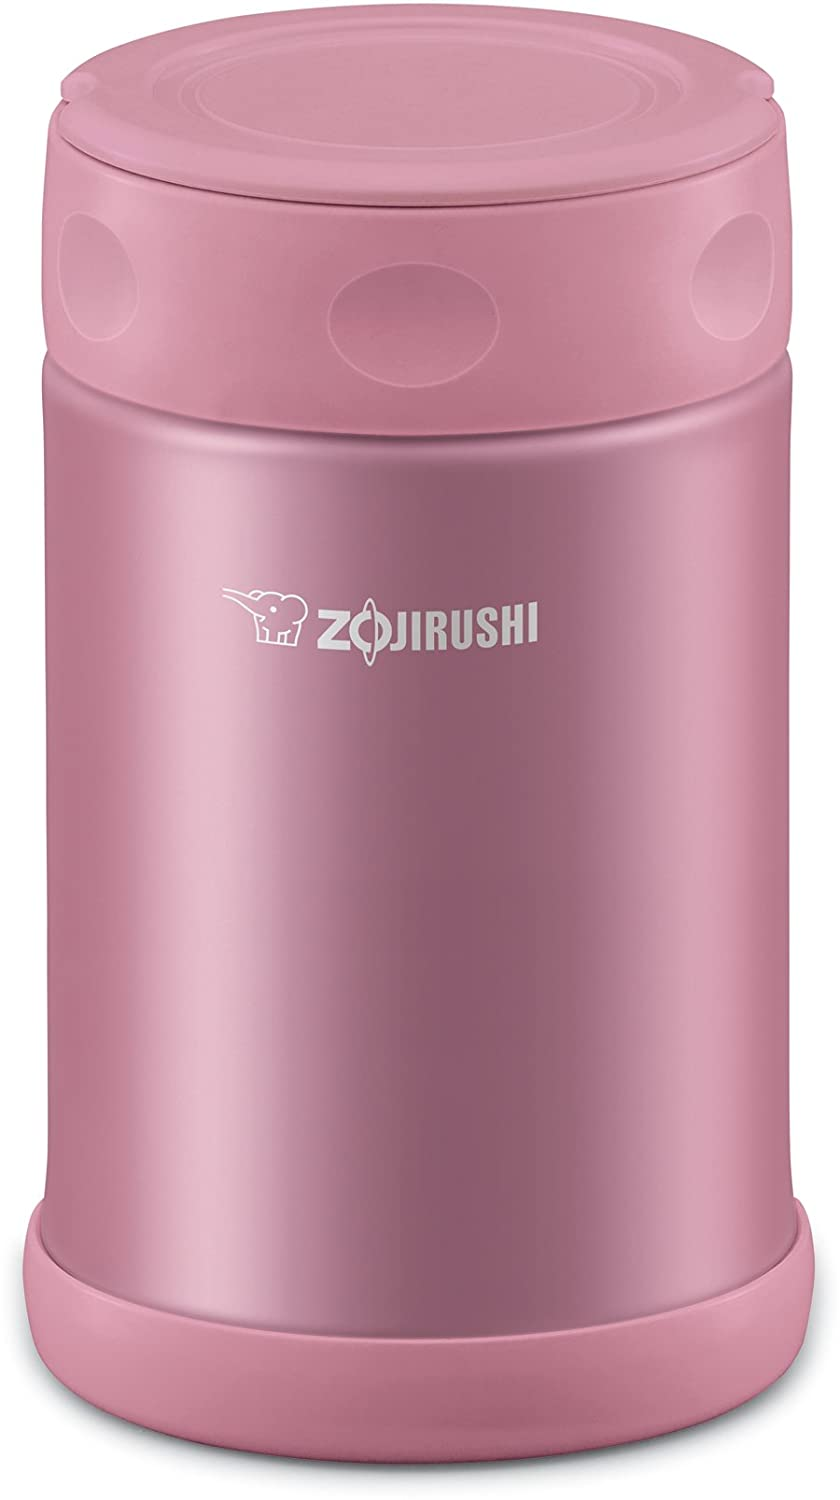 Zojirushi SW-EAE50PS Stainless Steel Food Jar 16.9 -Ounce/0.5-Liter Shiny Pink